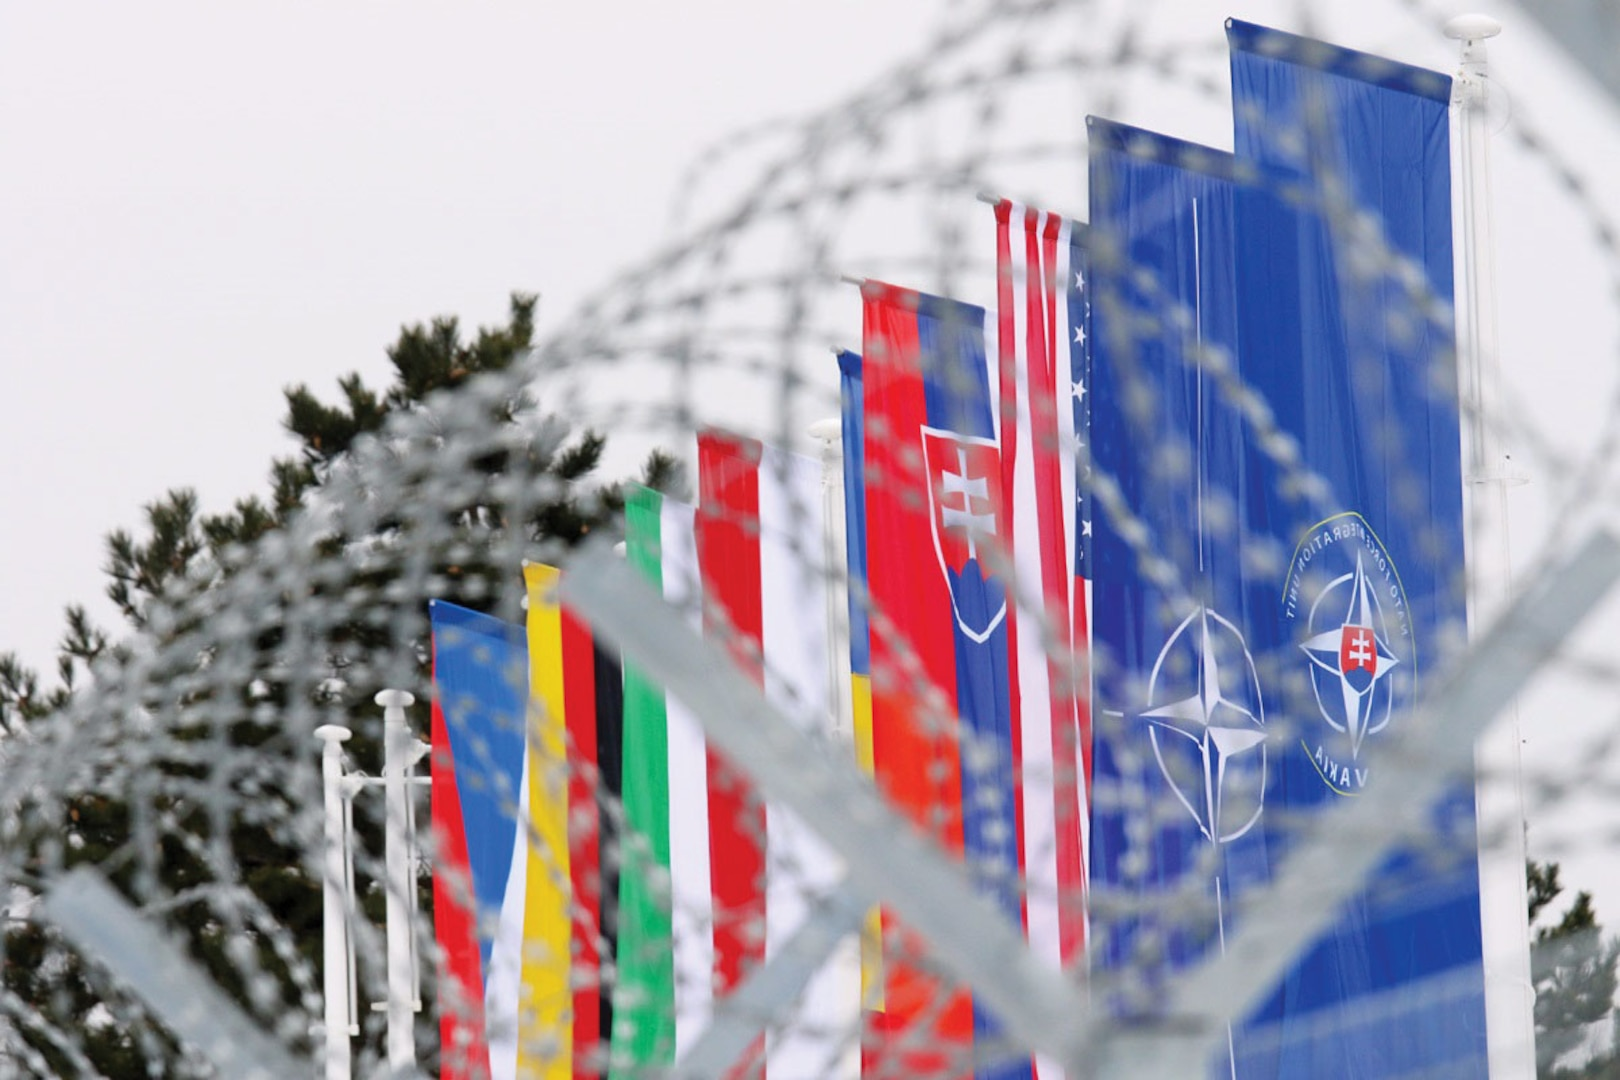 Original NATO caption: NATO inaugurates small unit headquarters in Slovakia. Attribution-NonCommercial-NoDerivs 2.0 Generic (CC BY-NC-ND 2.0), available at < https://www.flickr.com/photos/nato/32350160962/in/album-72157679537061225/>